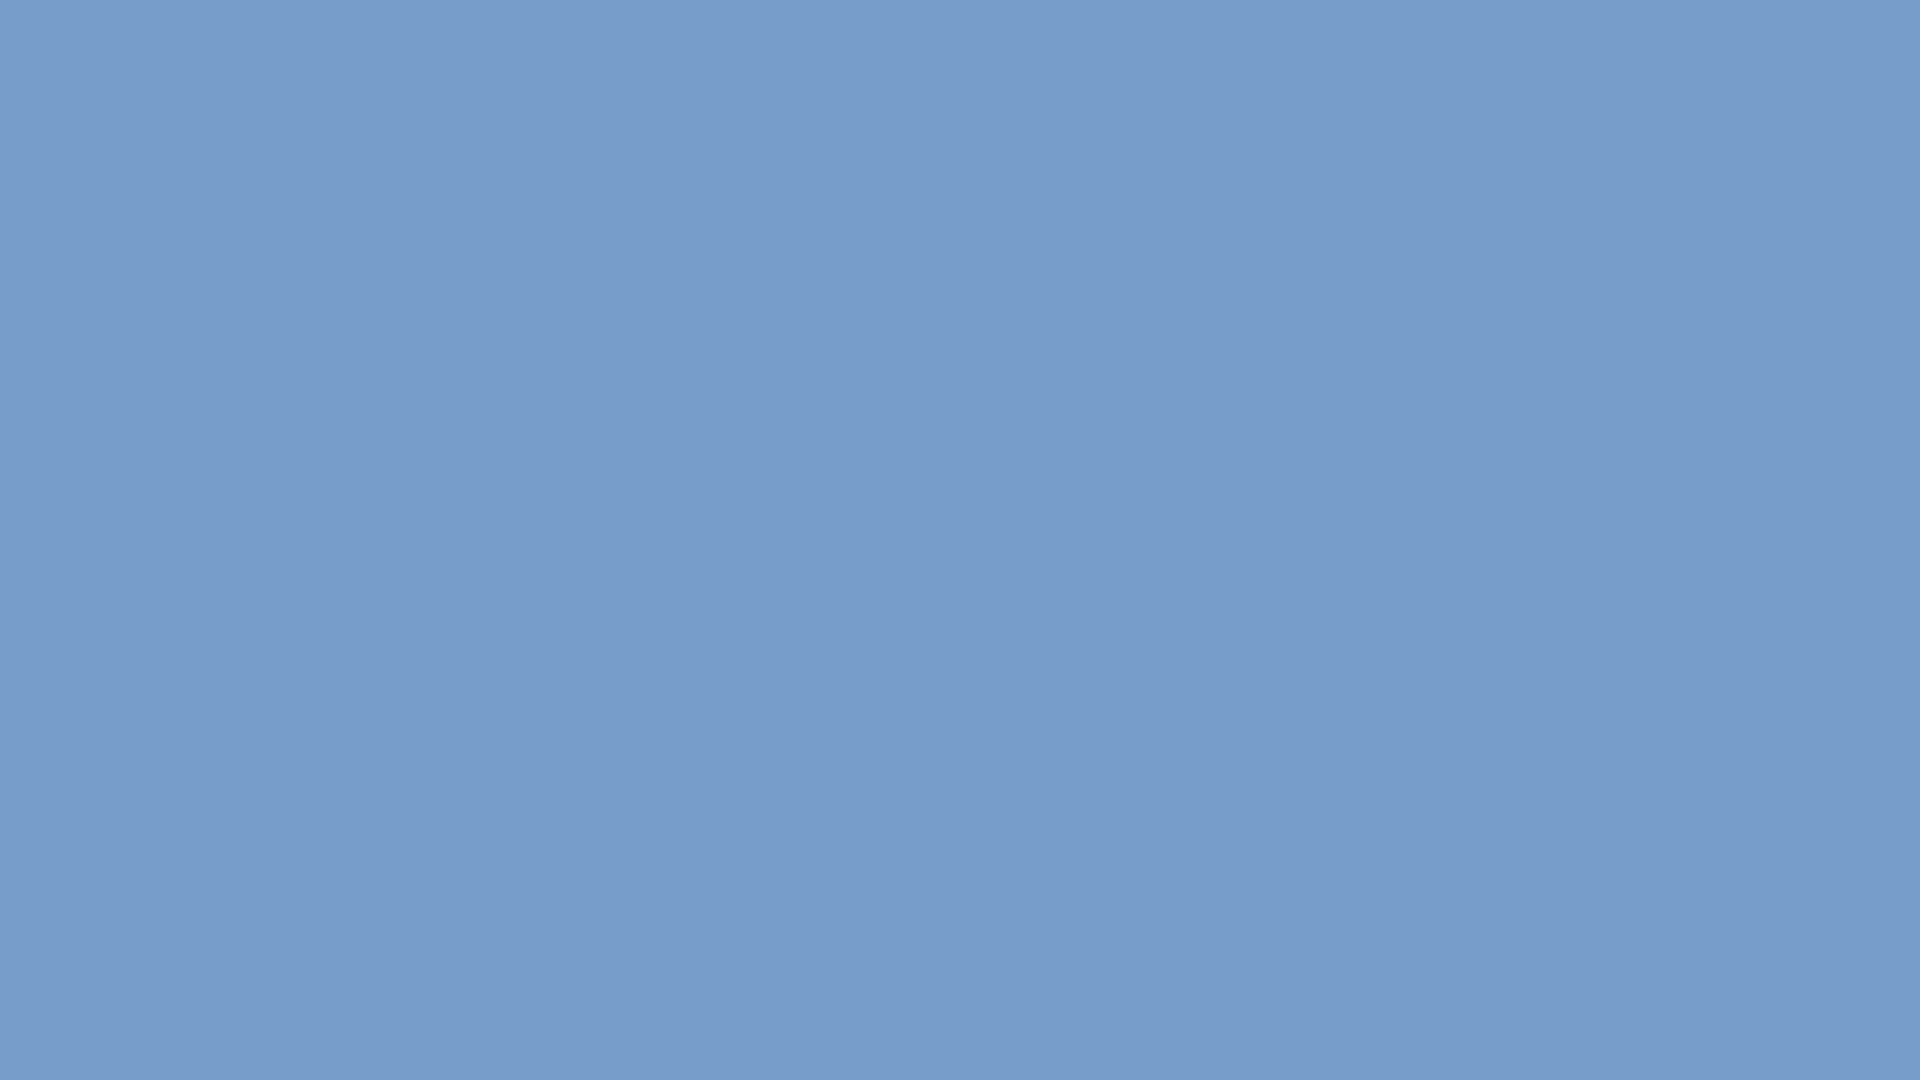 1920x1080 Dark Pastel Blue Solid Color Background